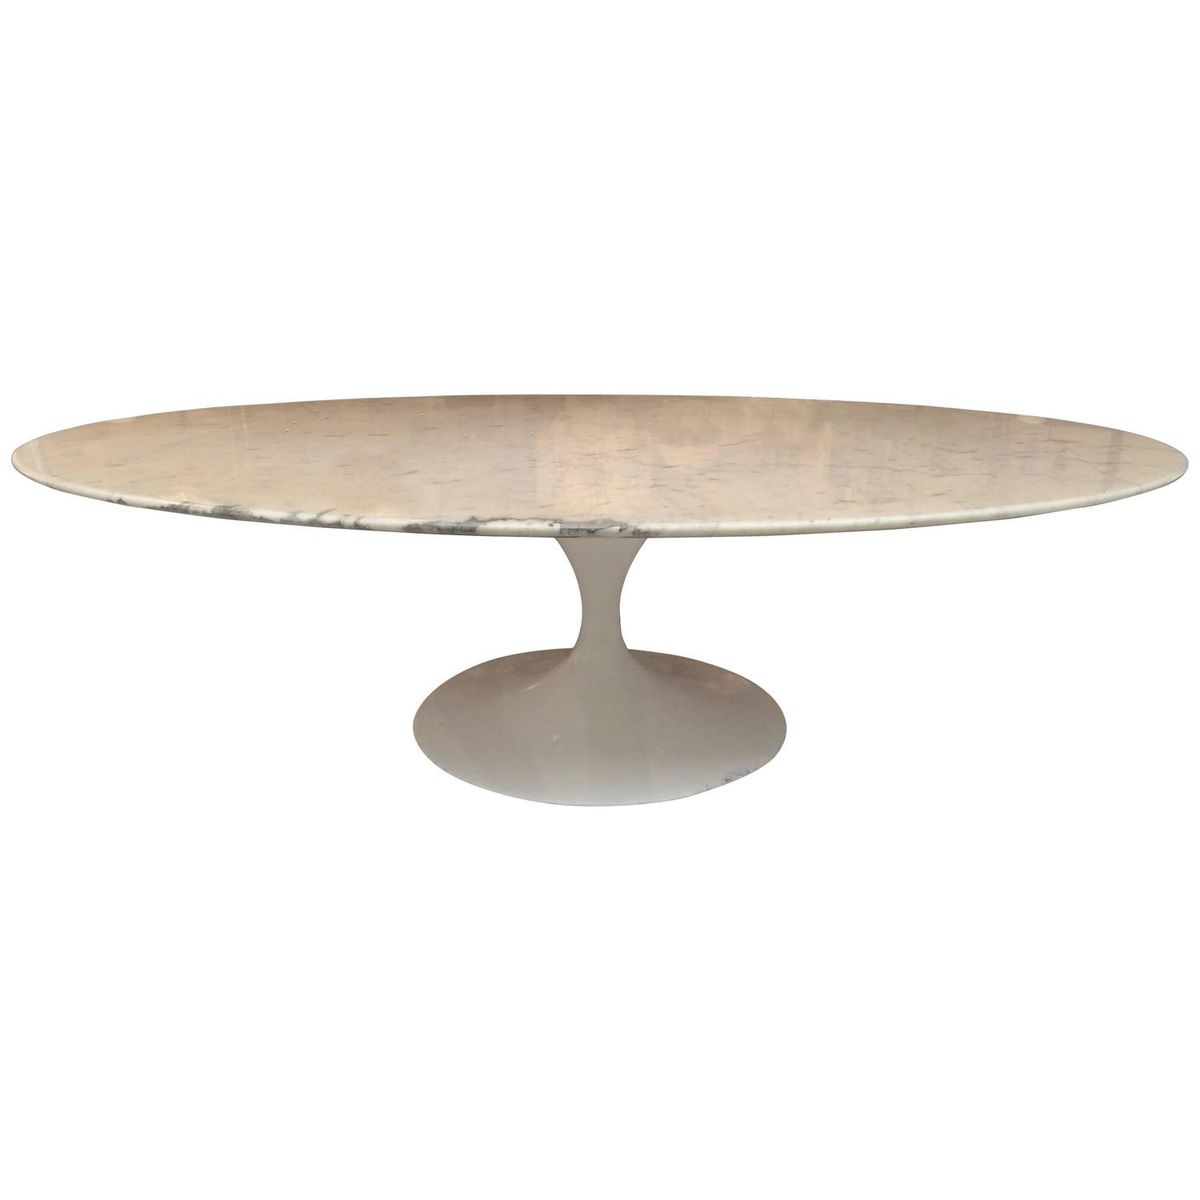 white marble tulip coffee table by eero saarinen for knoll 1960s for sale at pamono. Black Bedroom Furniture Sets. Home Design Ideas